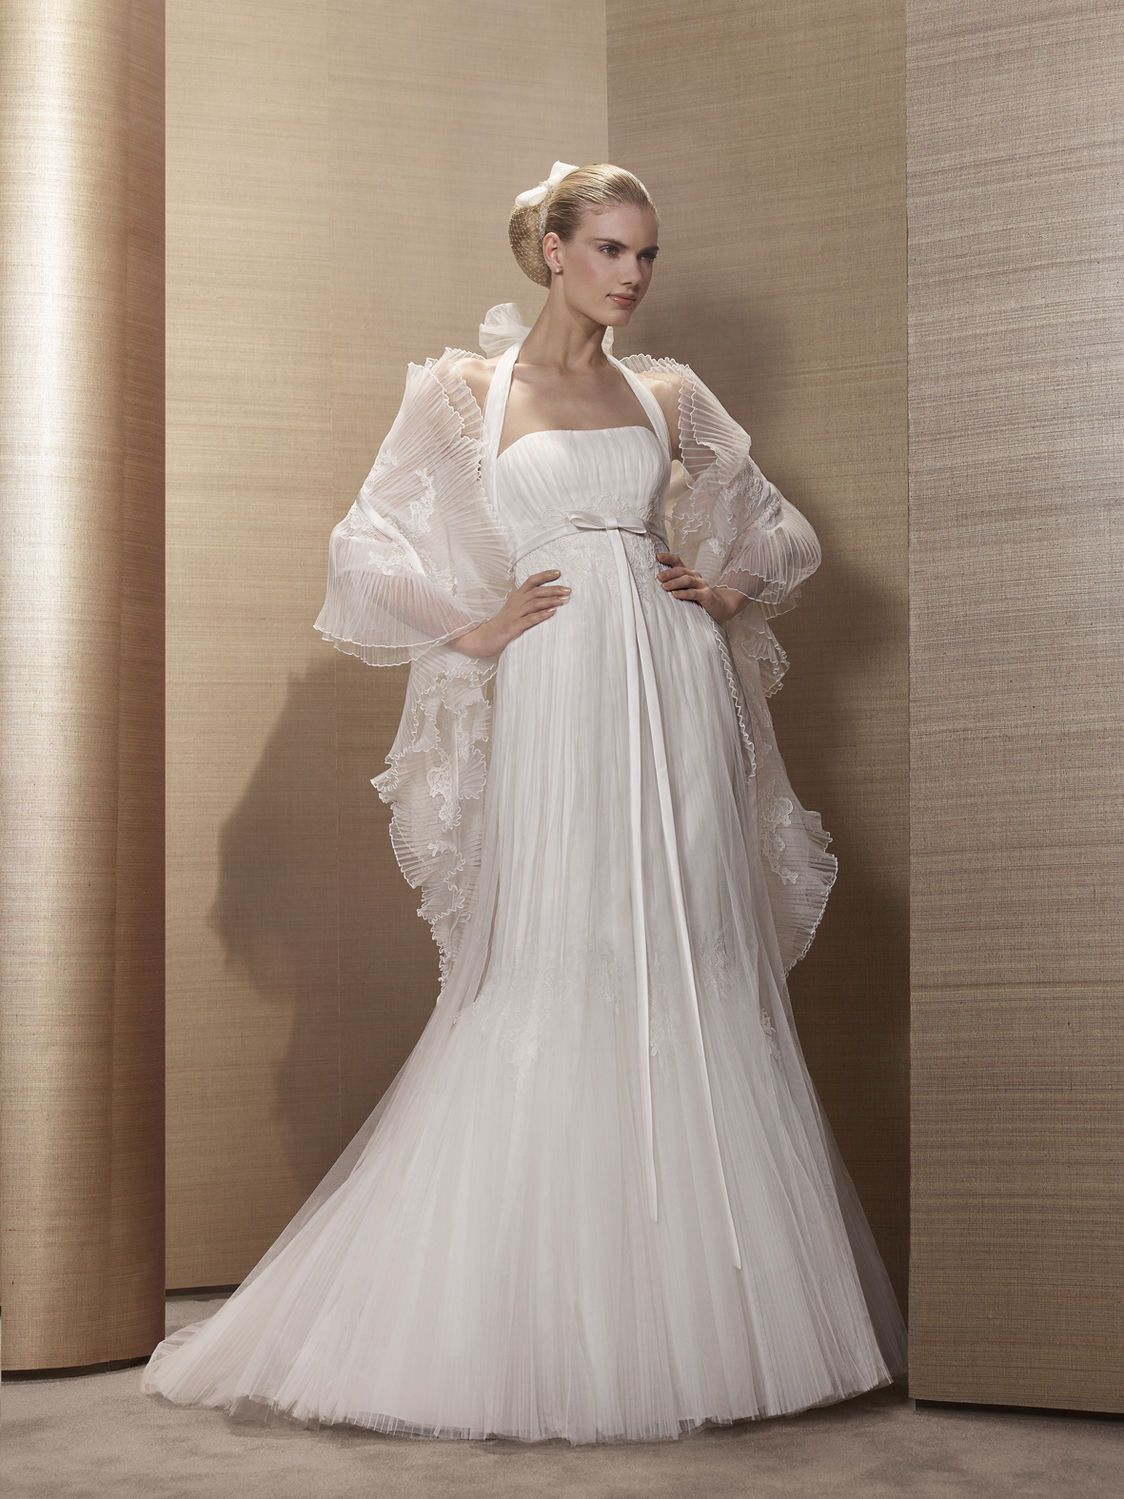 Seraphine by Pronuptia | 06. White: Young & Dreamy | Pinterest ...